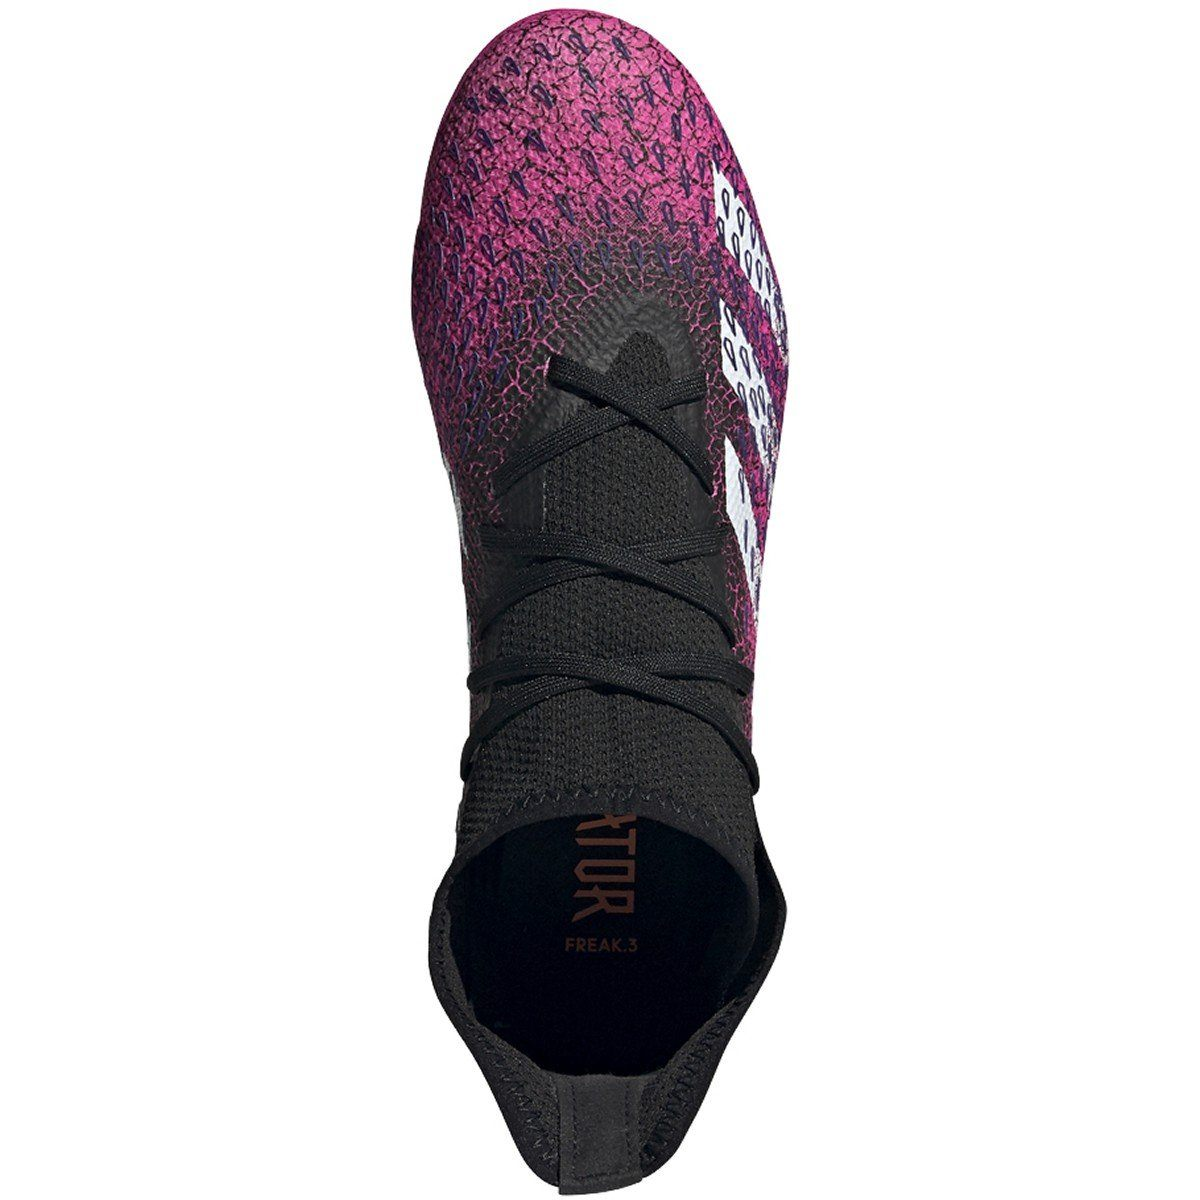 adidas Men's Predator Freak .3 Firm Ground Soccer Shoe | FW7514 Soccer Shoes Adidas 7 Black/White/Shock Pink